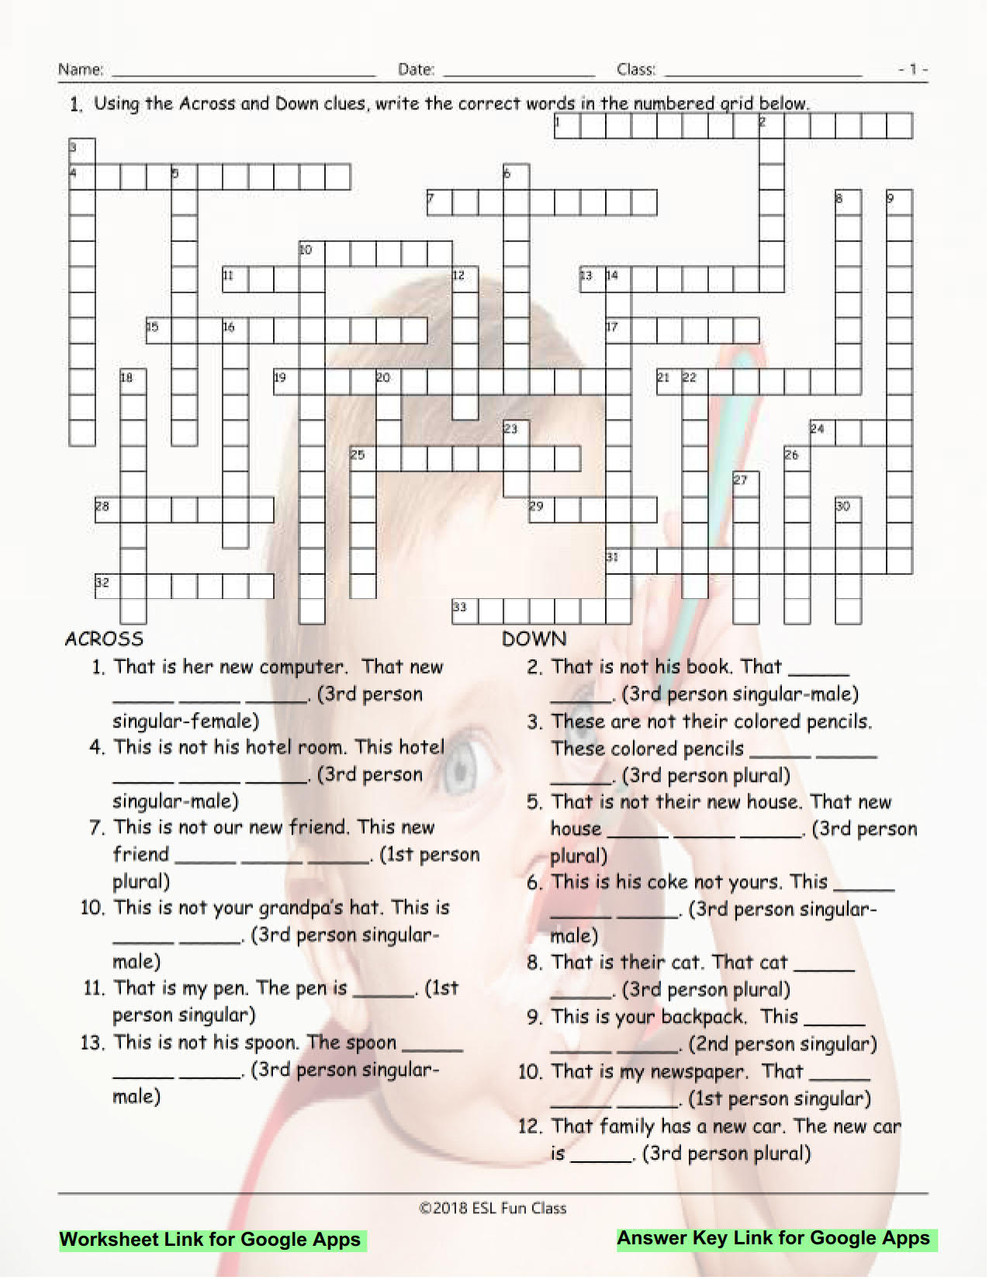 Possessive Pronouns Interactive Crossword Puzzle for Google Apps LINKS -  Amped Up Learning [ 1280 x 989 Pixel ]